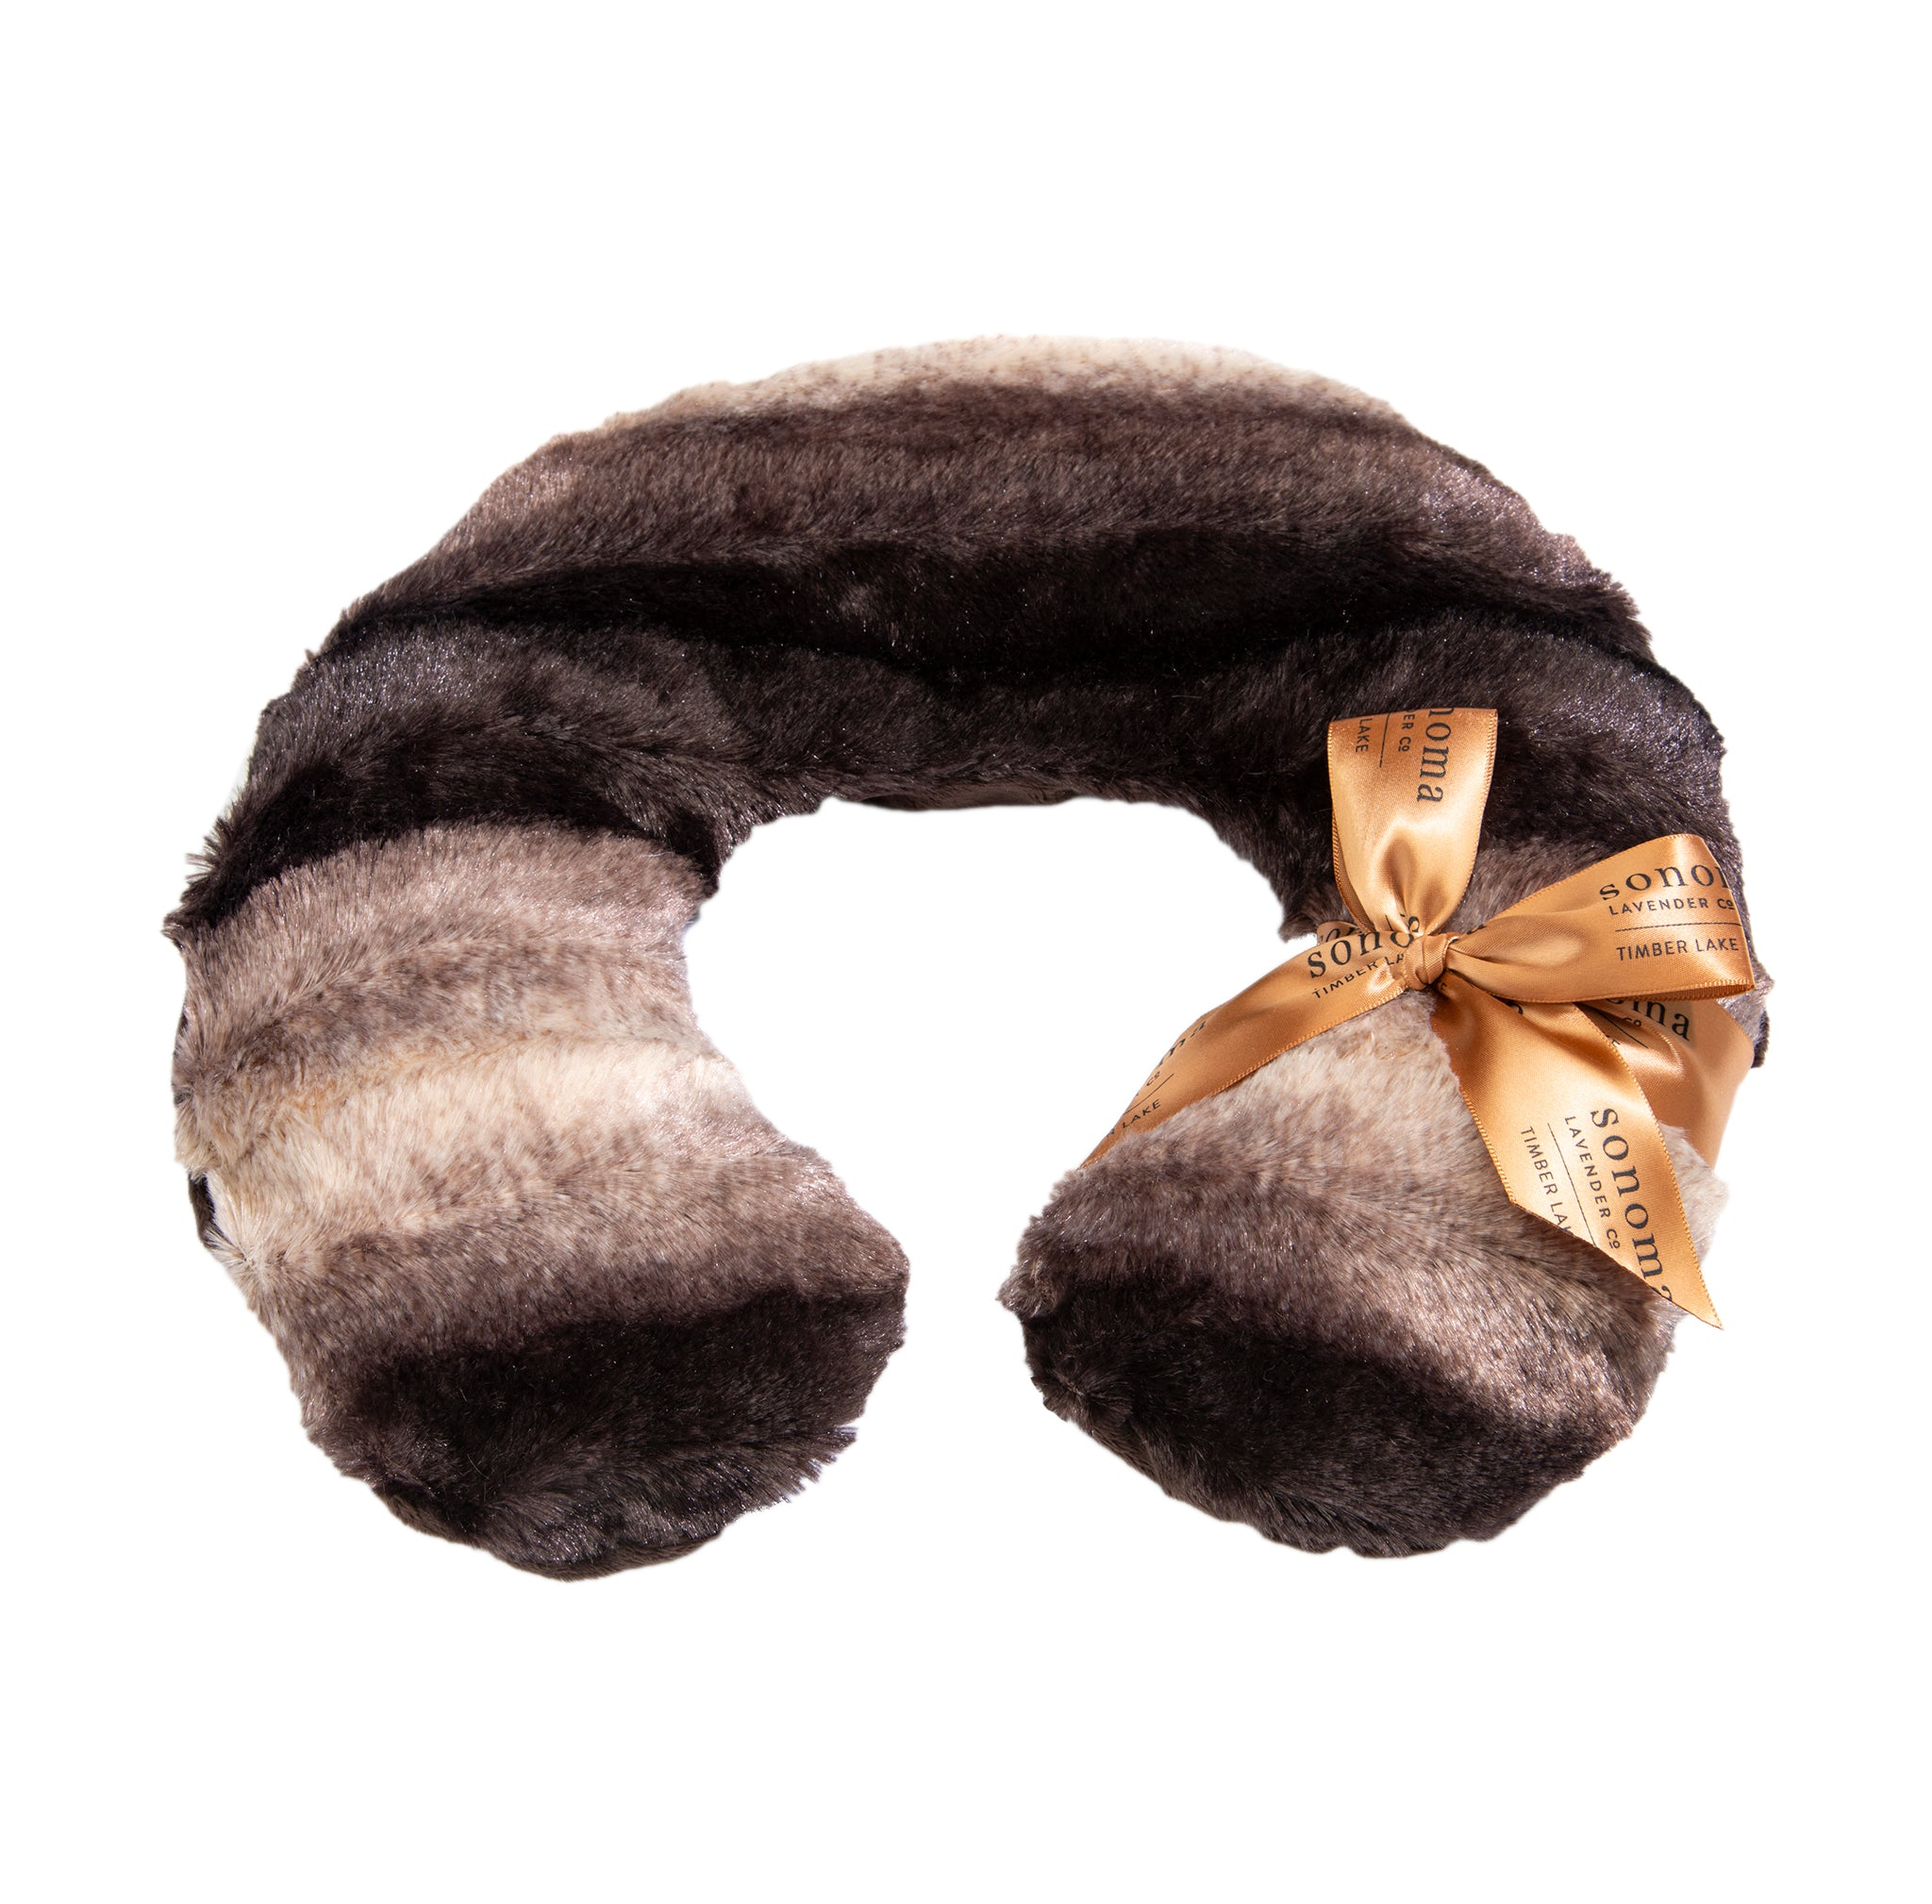 NEW! Timber Lake Neck Pillow Chinchilla